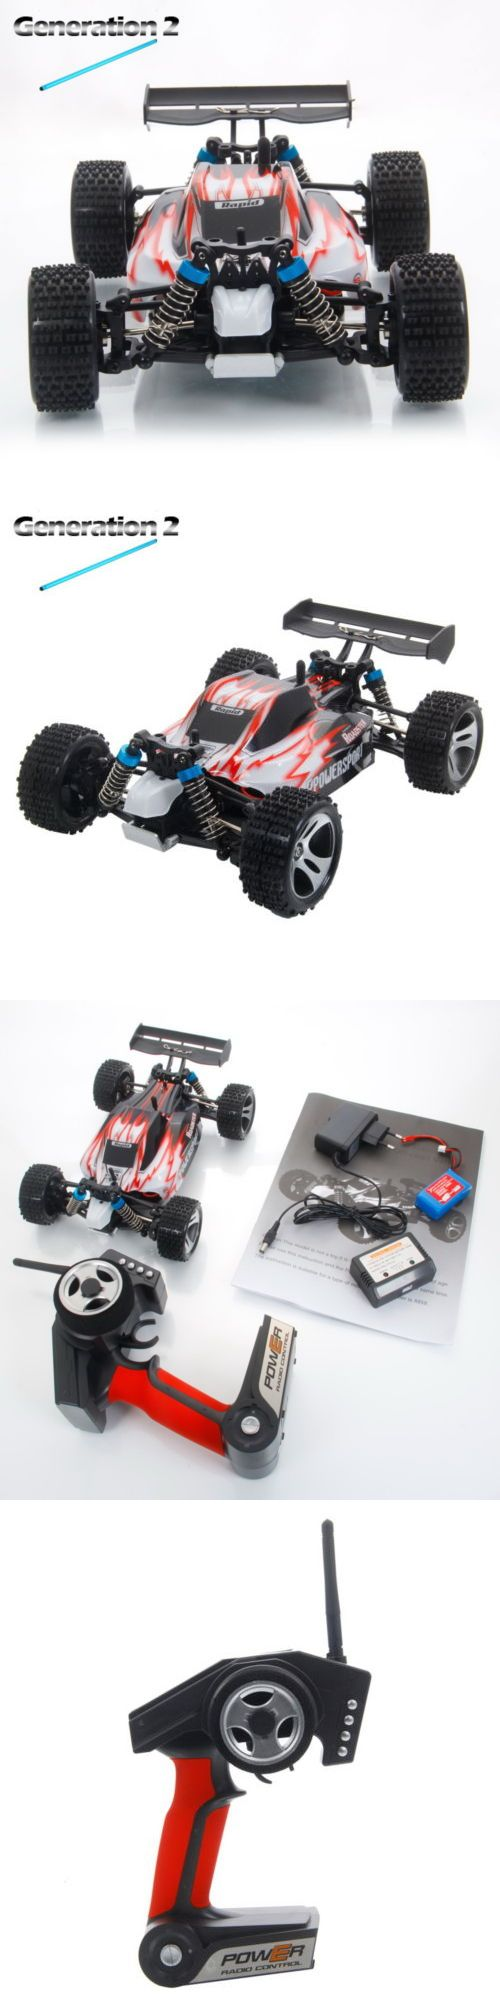 Cars Trucks and Motorcycles 182183: Upgrade Wltoys A959 2.4G 1 18 Vortex 4Wd Electric Rc Car Off-Road Buggy Rtr Red -> BUY IT NOW ONLY: $36.99 on eBay!